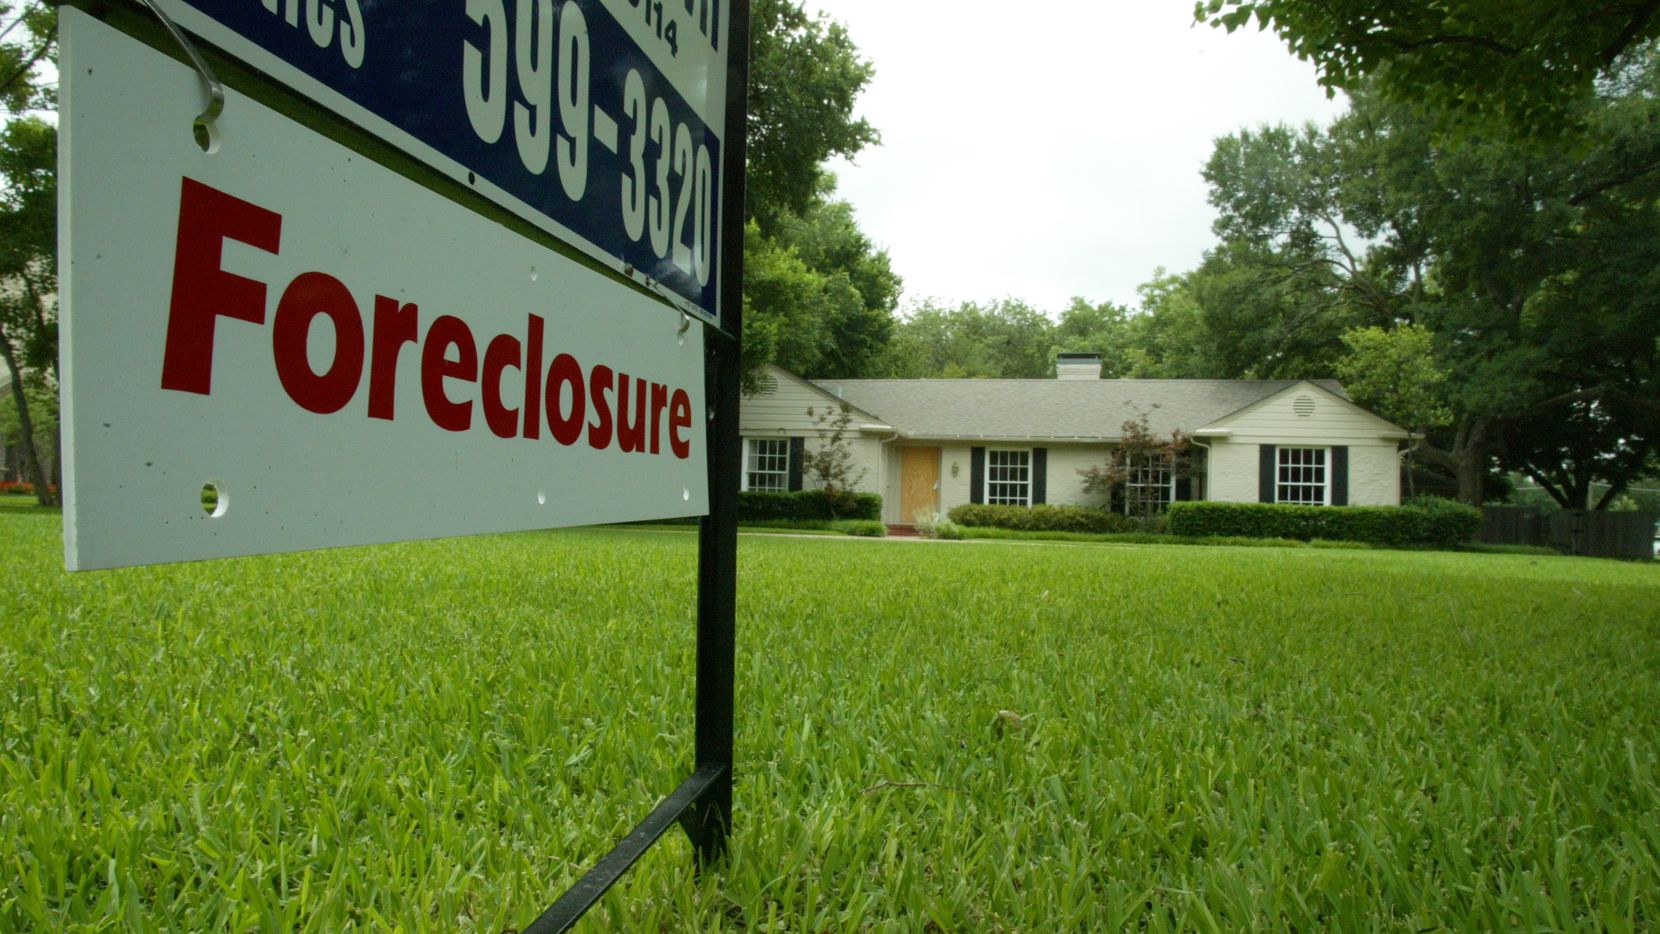 Home foreclosure filings in the D-FW area were down 27% in the first half of 2019.